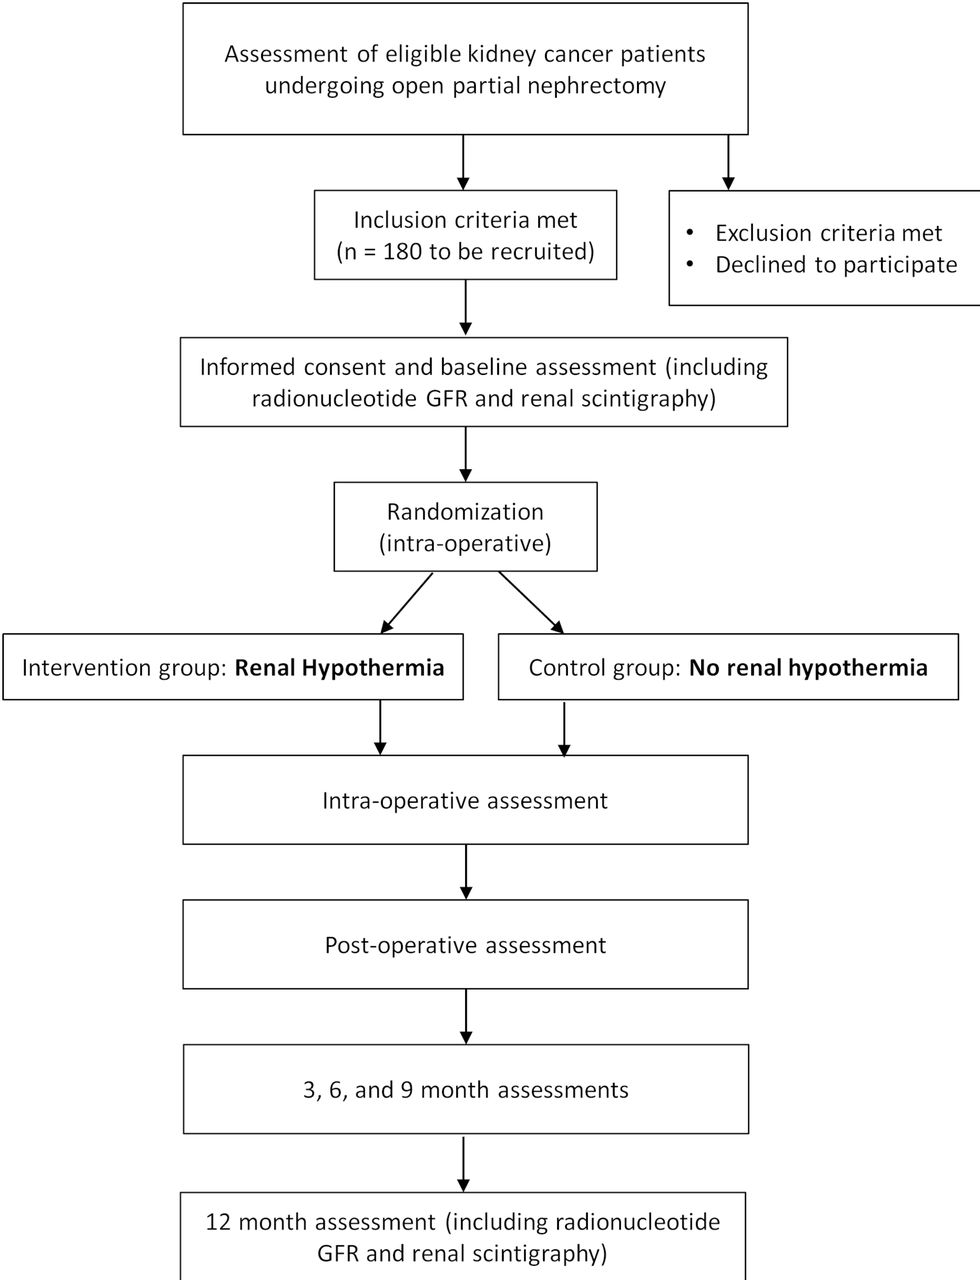 Renal hypothermia during partial nephrectomy for patients